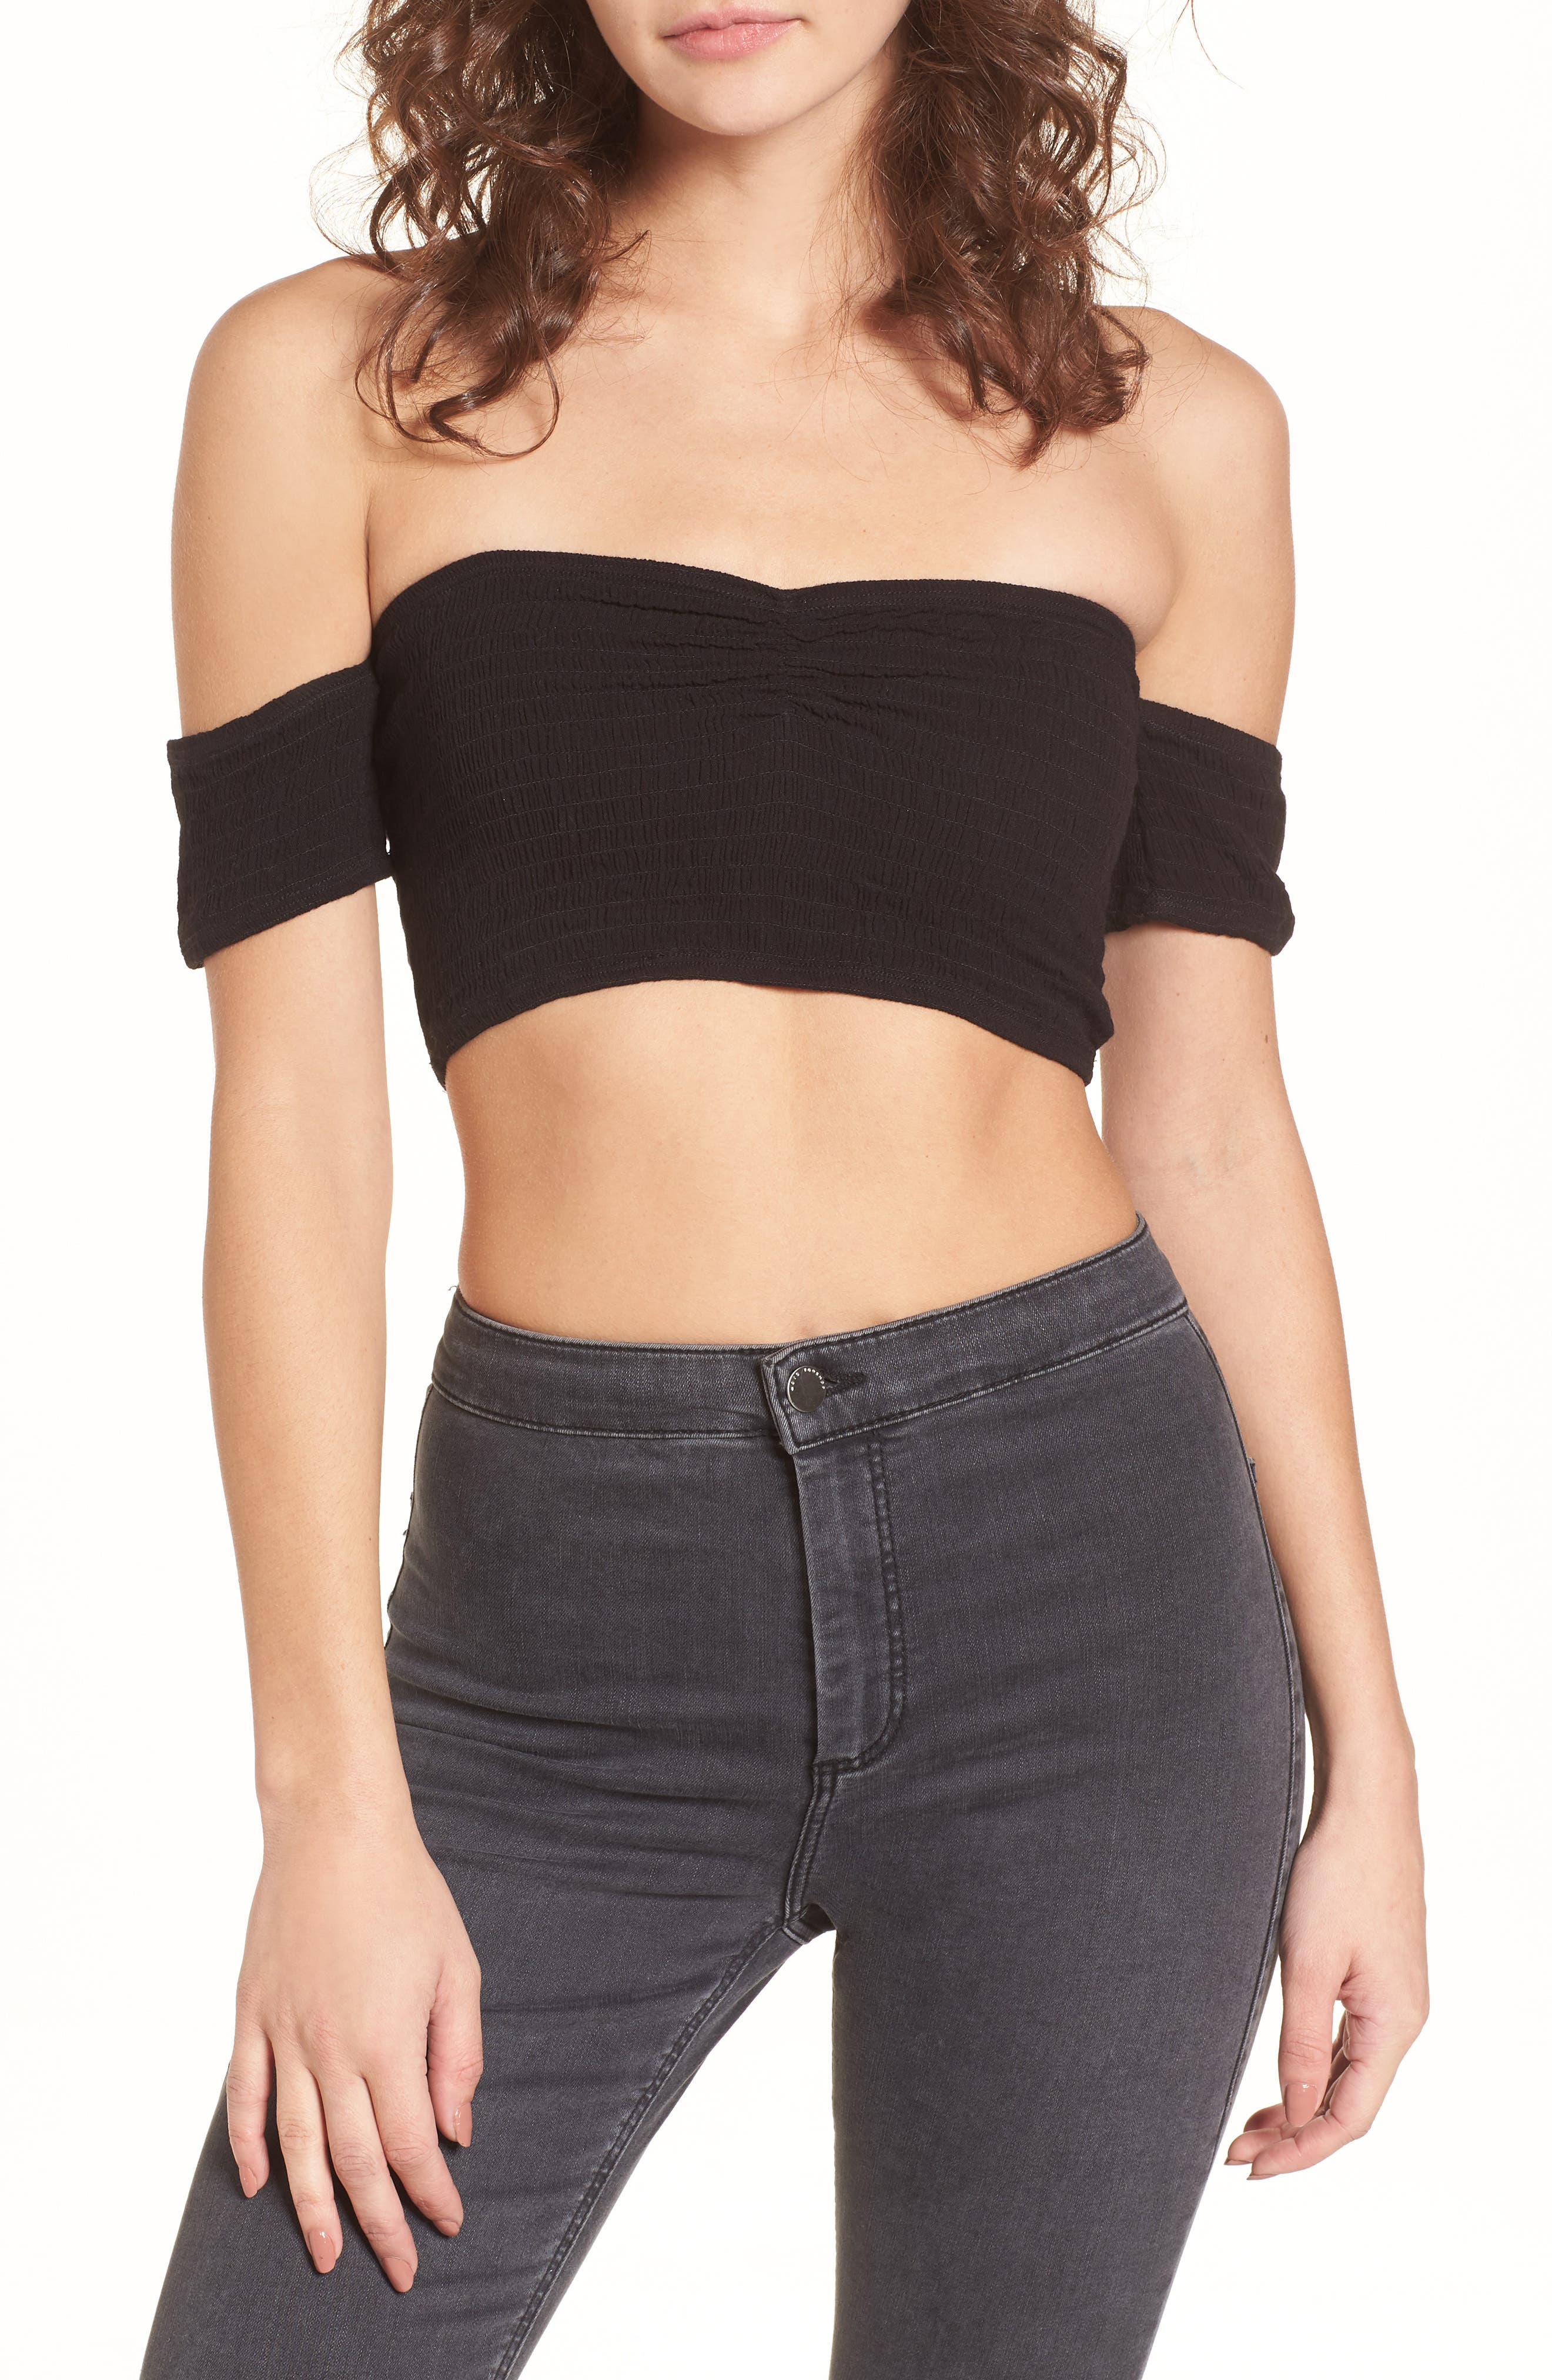 Addicted 2 Me Smocked Crop Top,                             Main thumbnail 1, color,                             Black